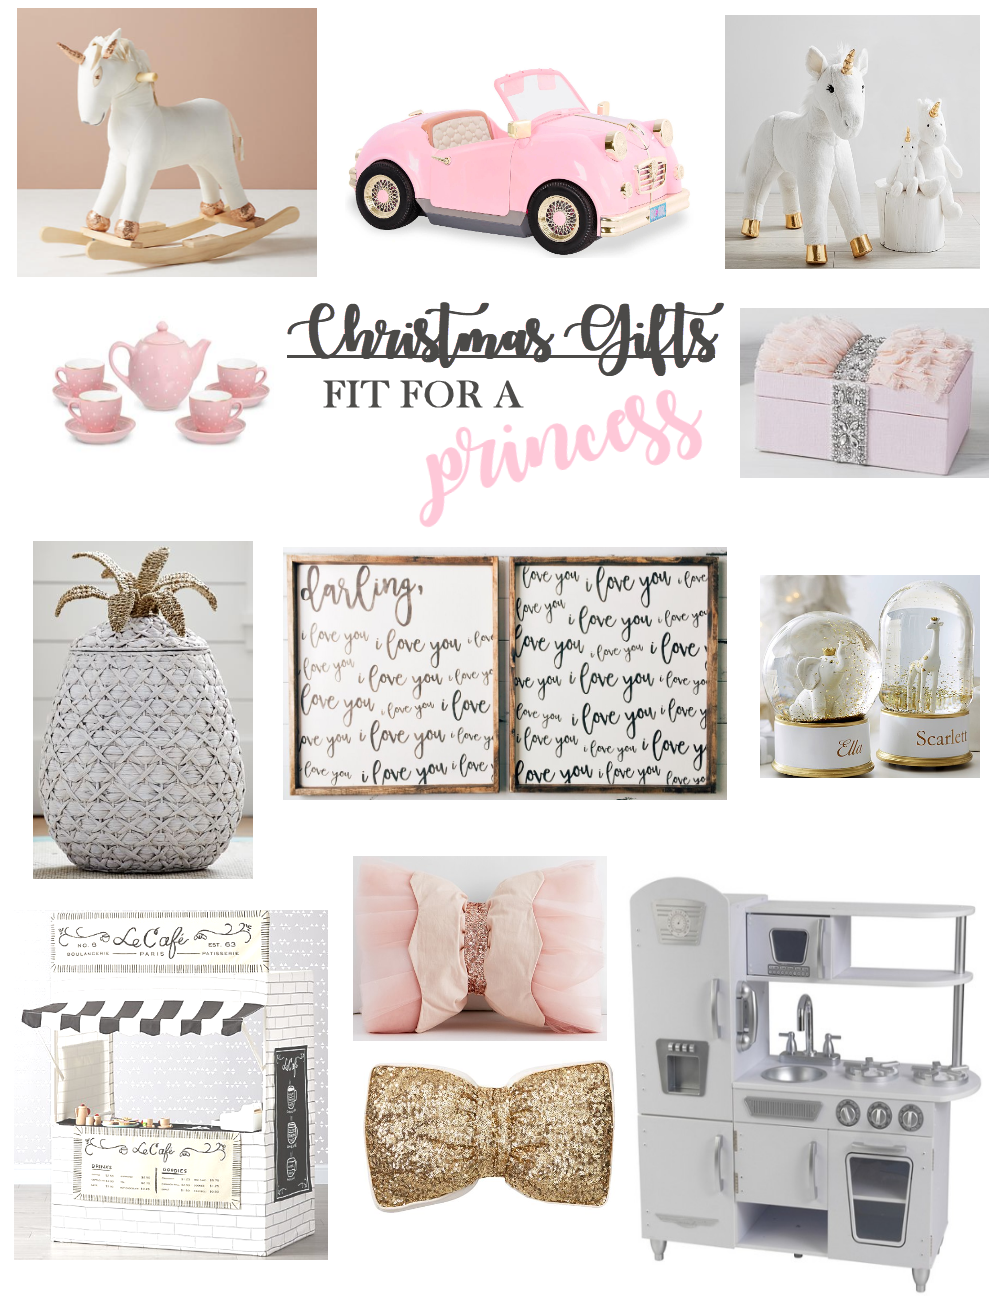 Christmas Gifts Fit for a Princess